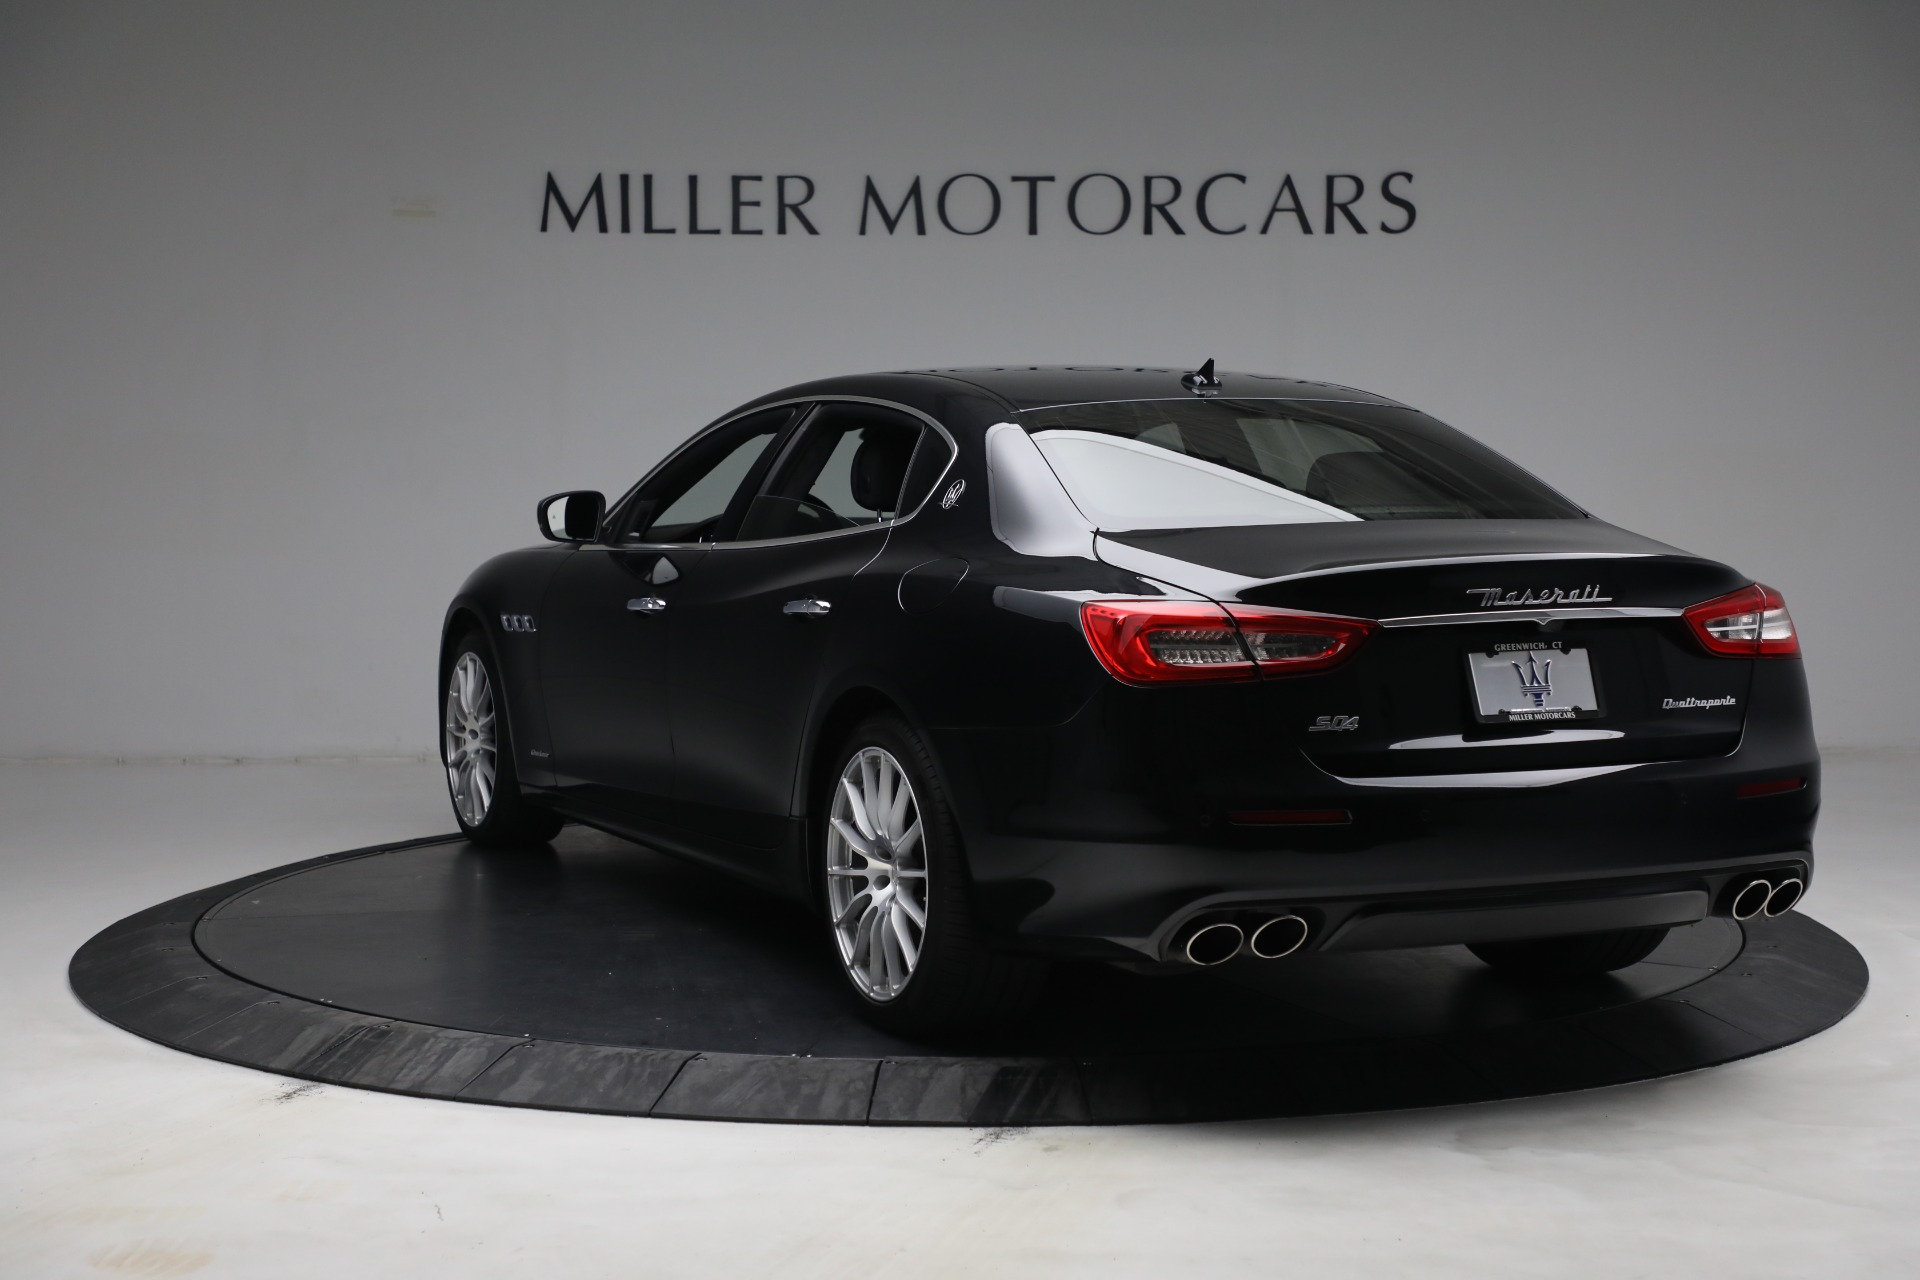 New 2019 Maserati Quattroporte S Q4 GranLusso For Sale In Greenwich, CT 2619_p5